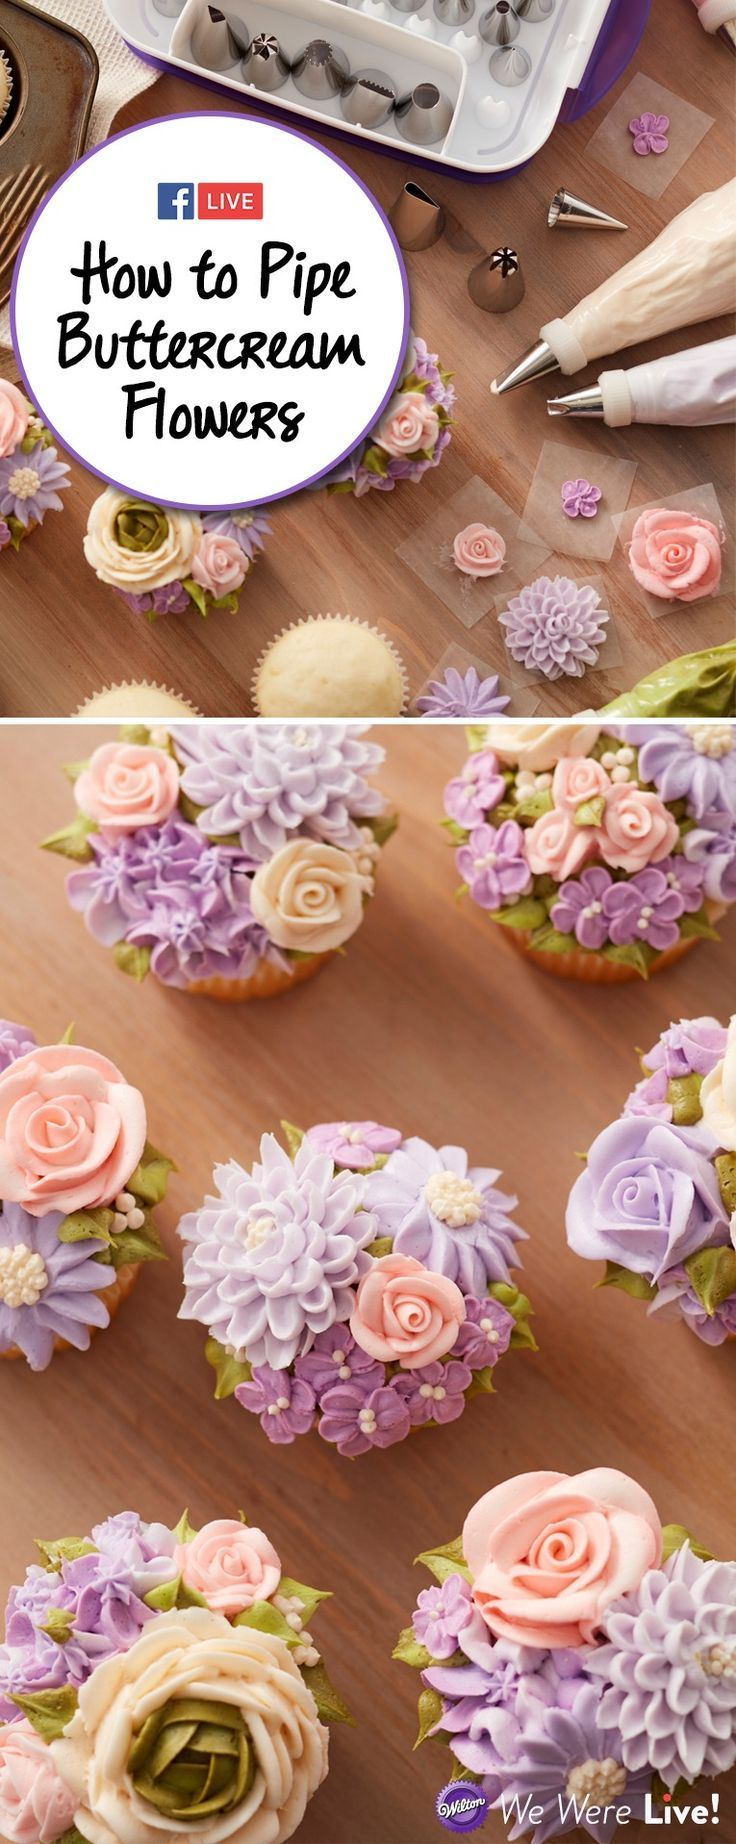 TUTORIAL - Learn how to pipe buttercream flowers to make beautiful cupcakes! This Facebook Live episode by Wilton Cake Decorating will show you how to make buttercream flowers like Chrysanthemum, Ranunculus, and Daisy.  cake decorating tips and tricks